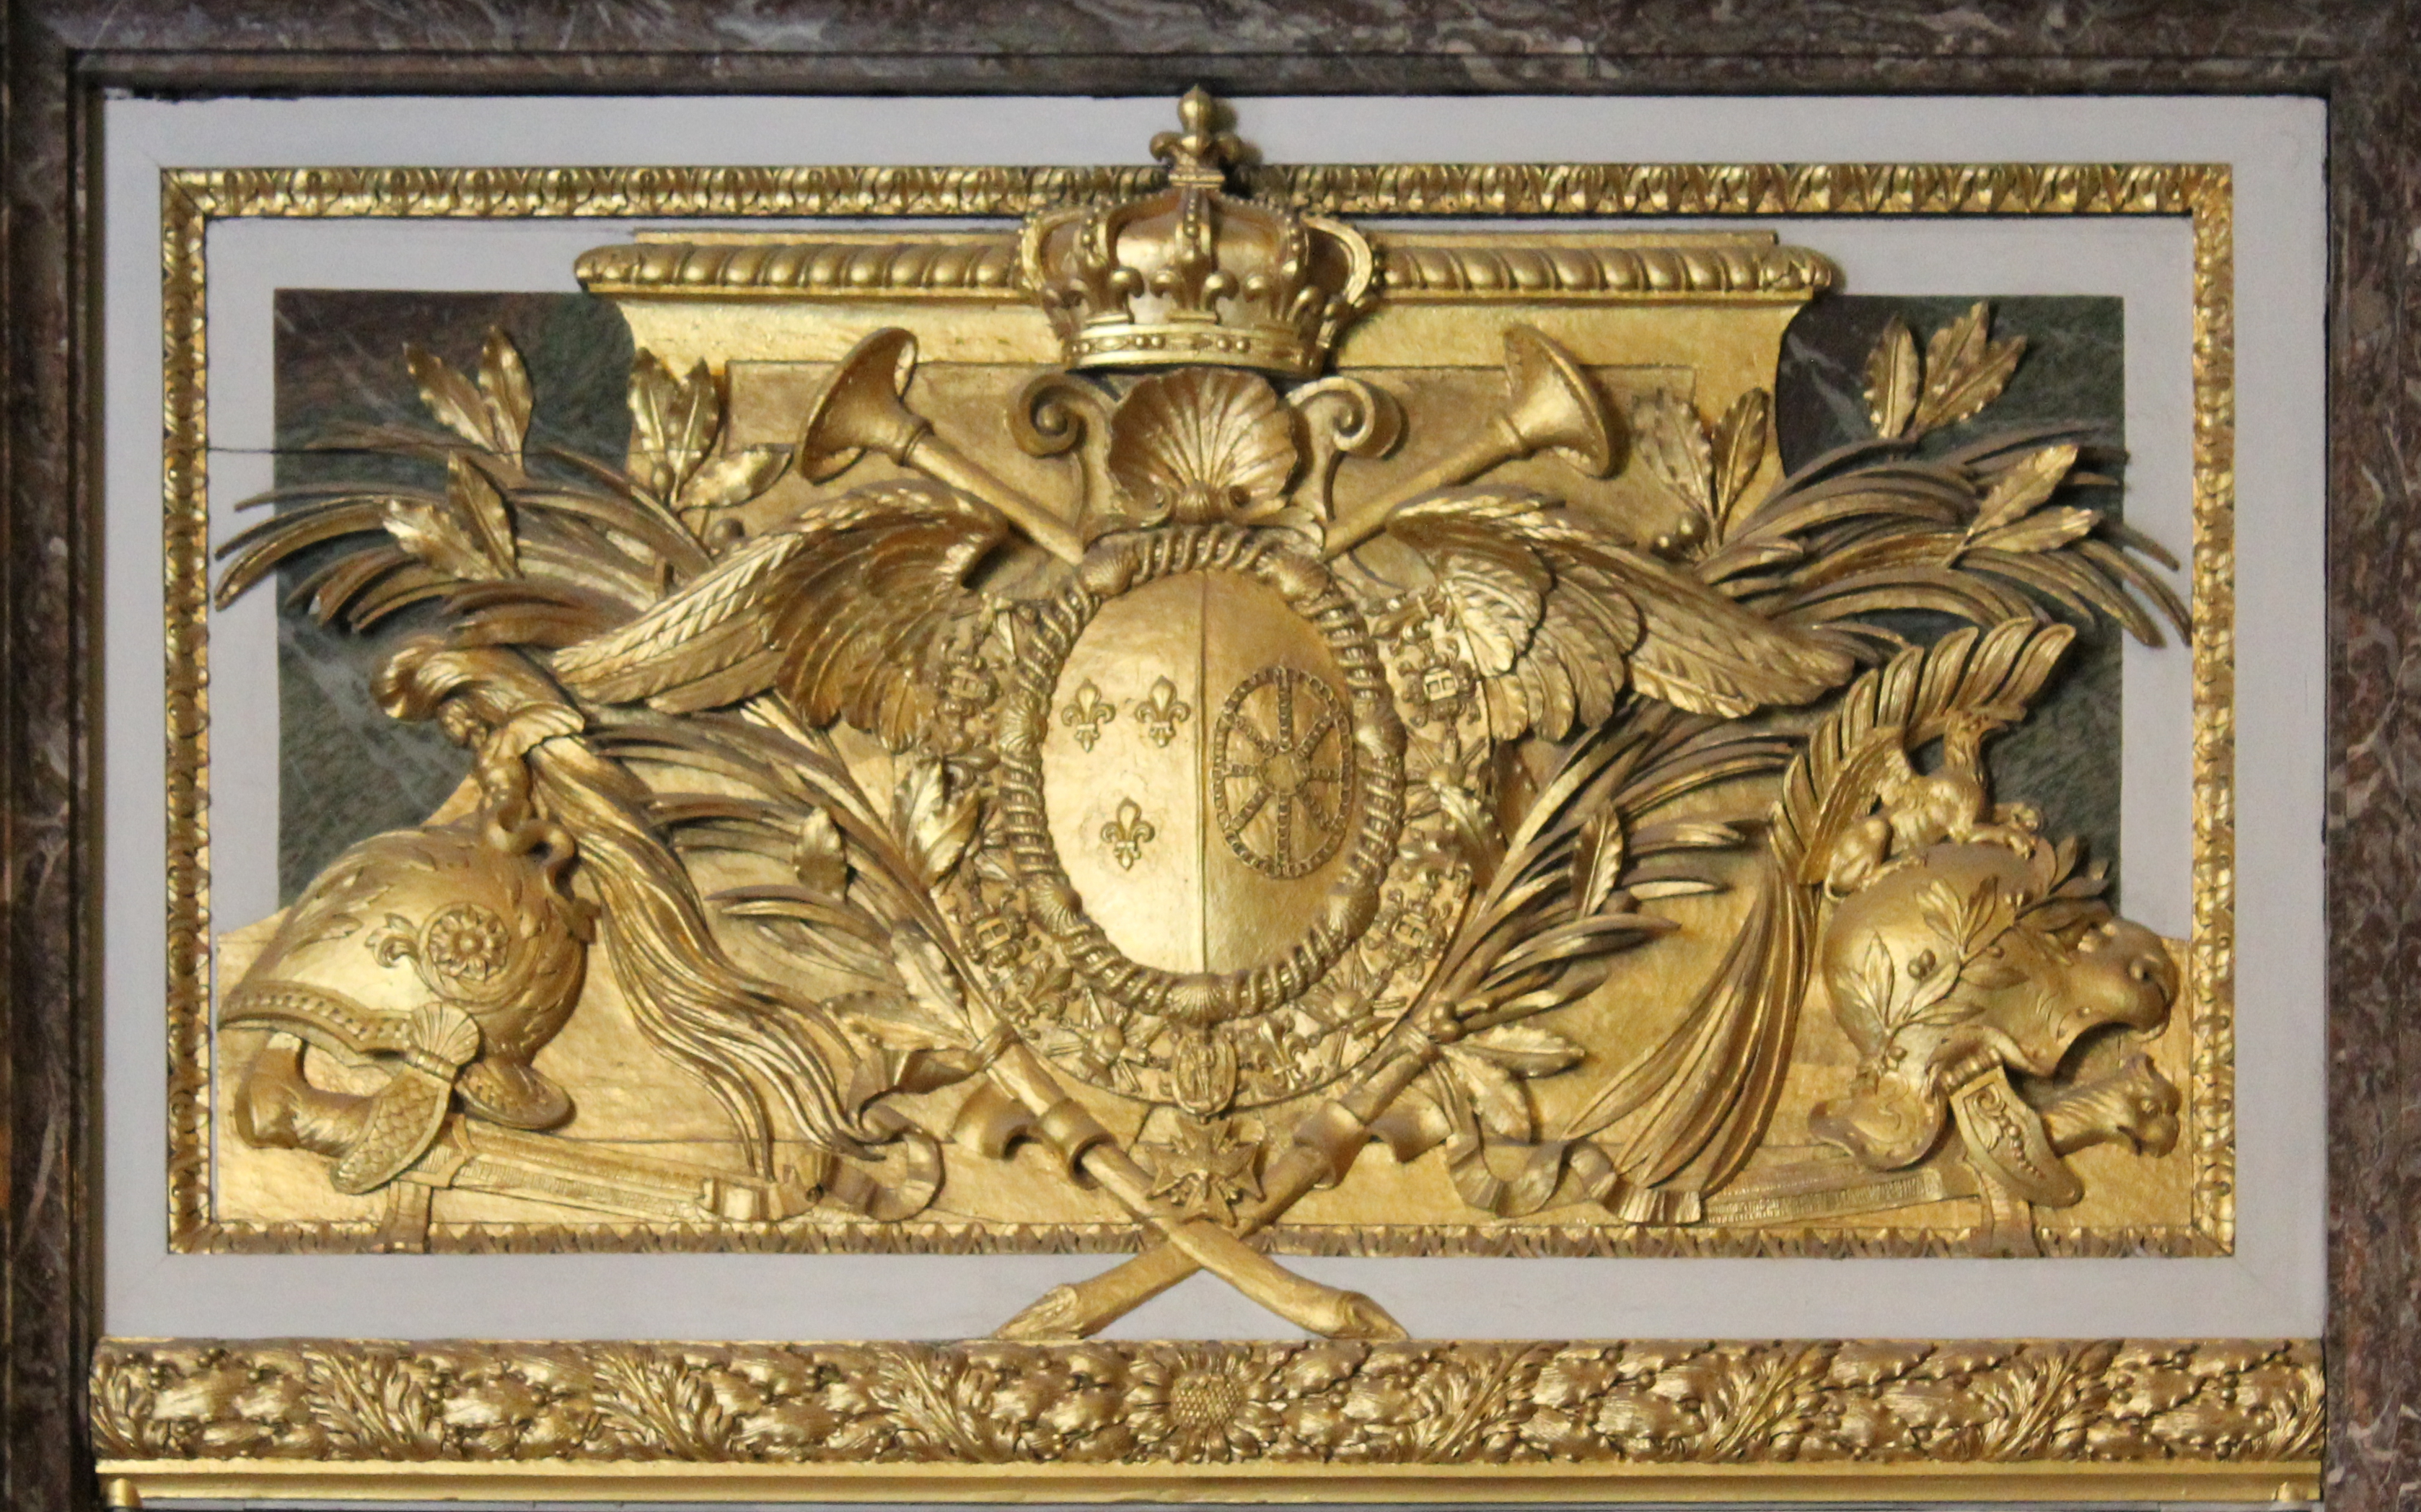 1000 images about marie antoinette versailles and more on for Salon porte de versailles horaires